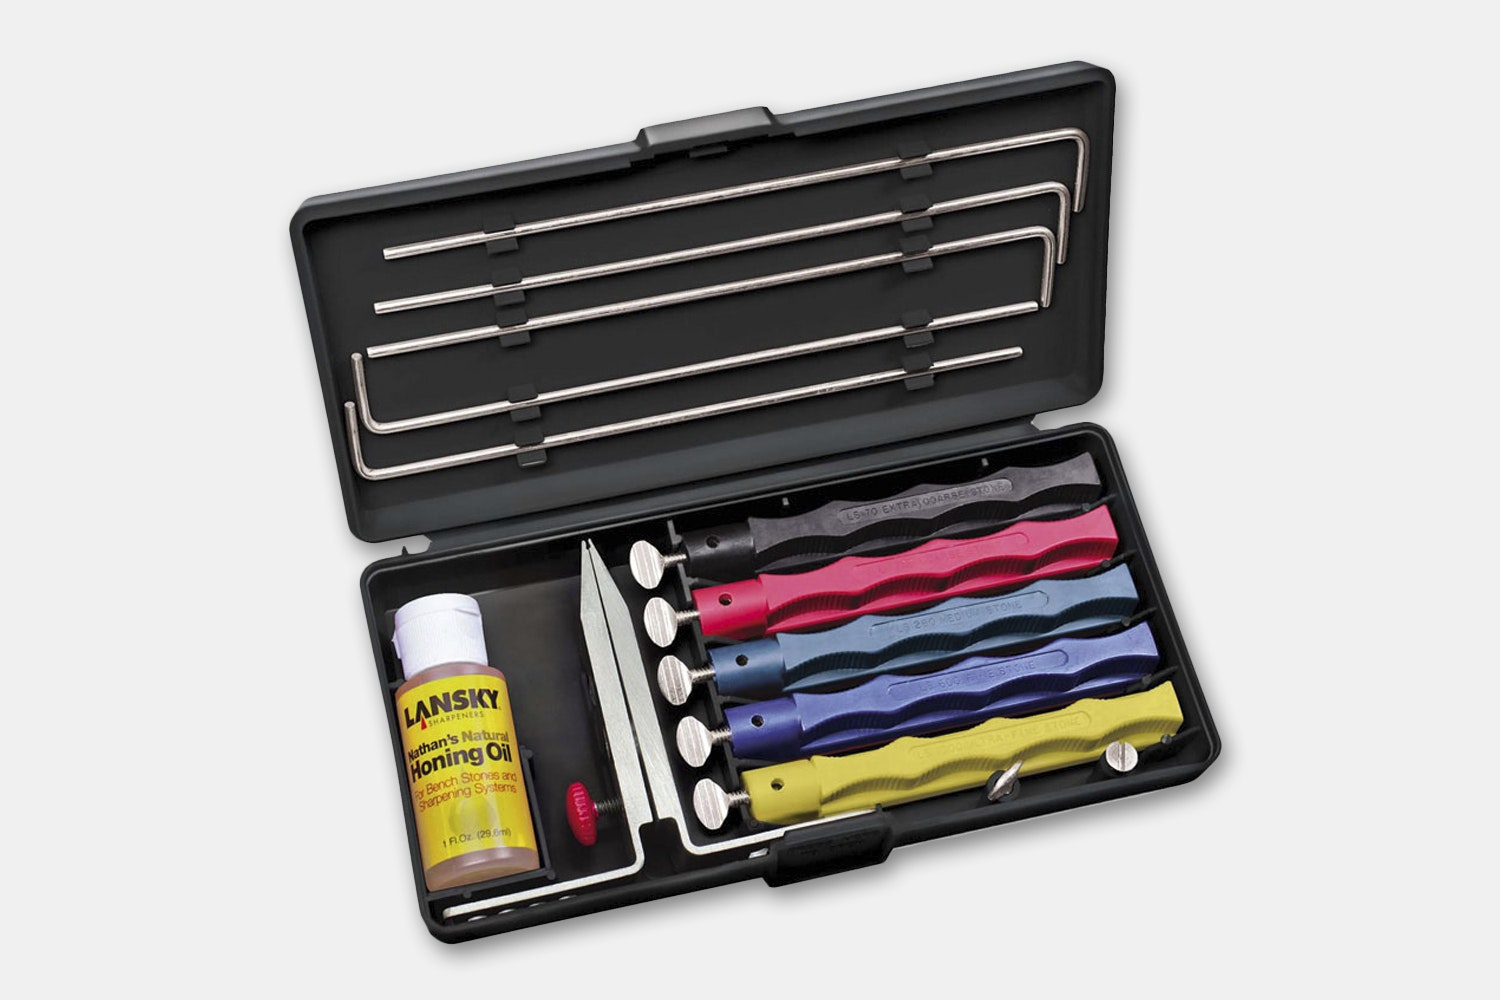 Deluxe 5-Stone Sharpening Set